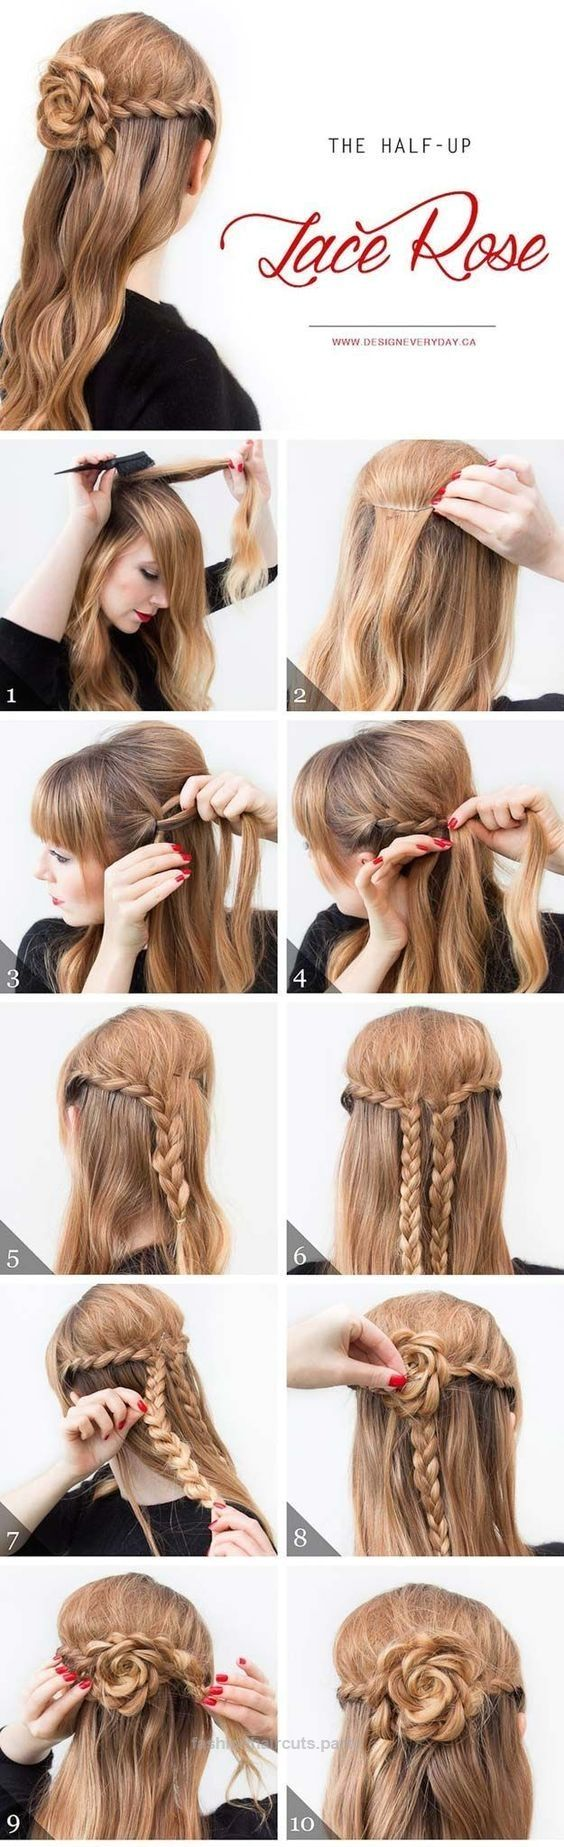 56 best braids images on pinterest | hairstyles, boys and children